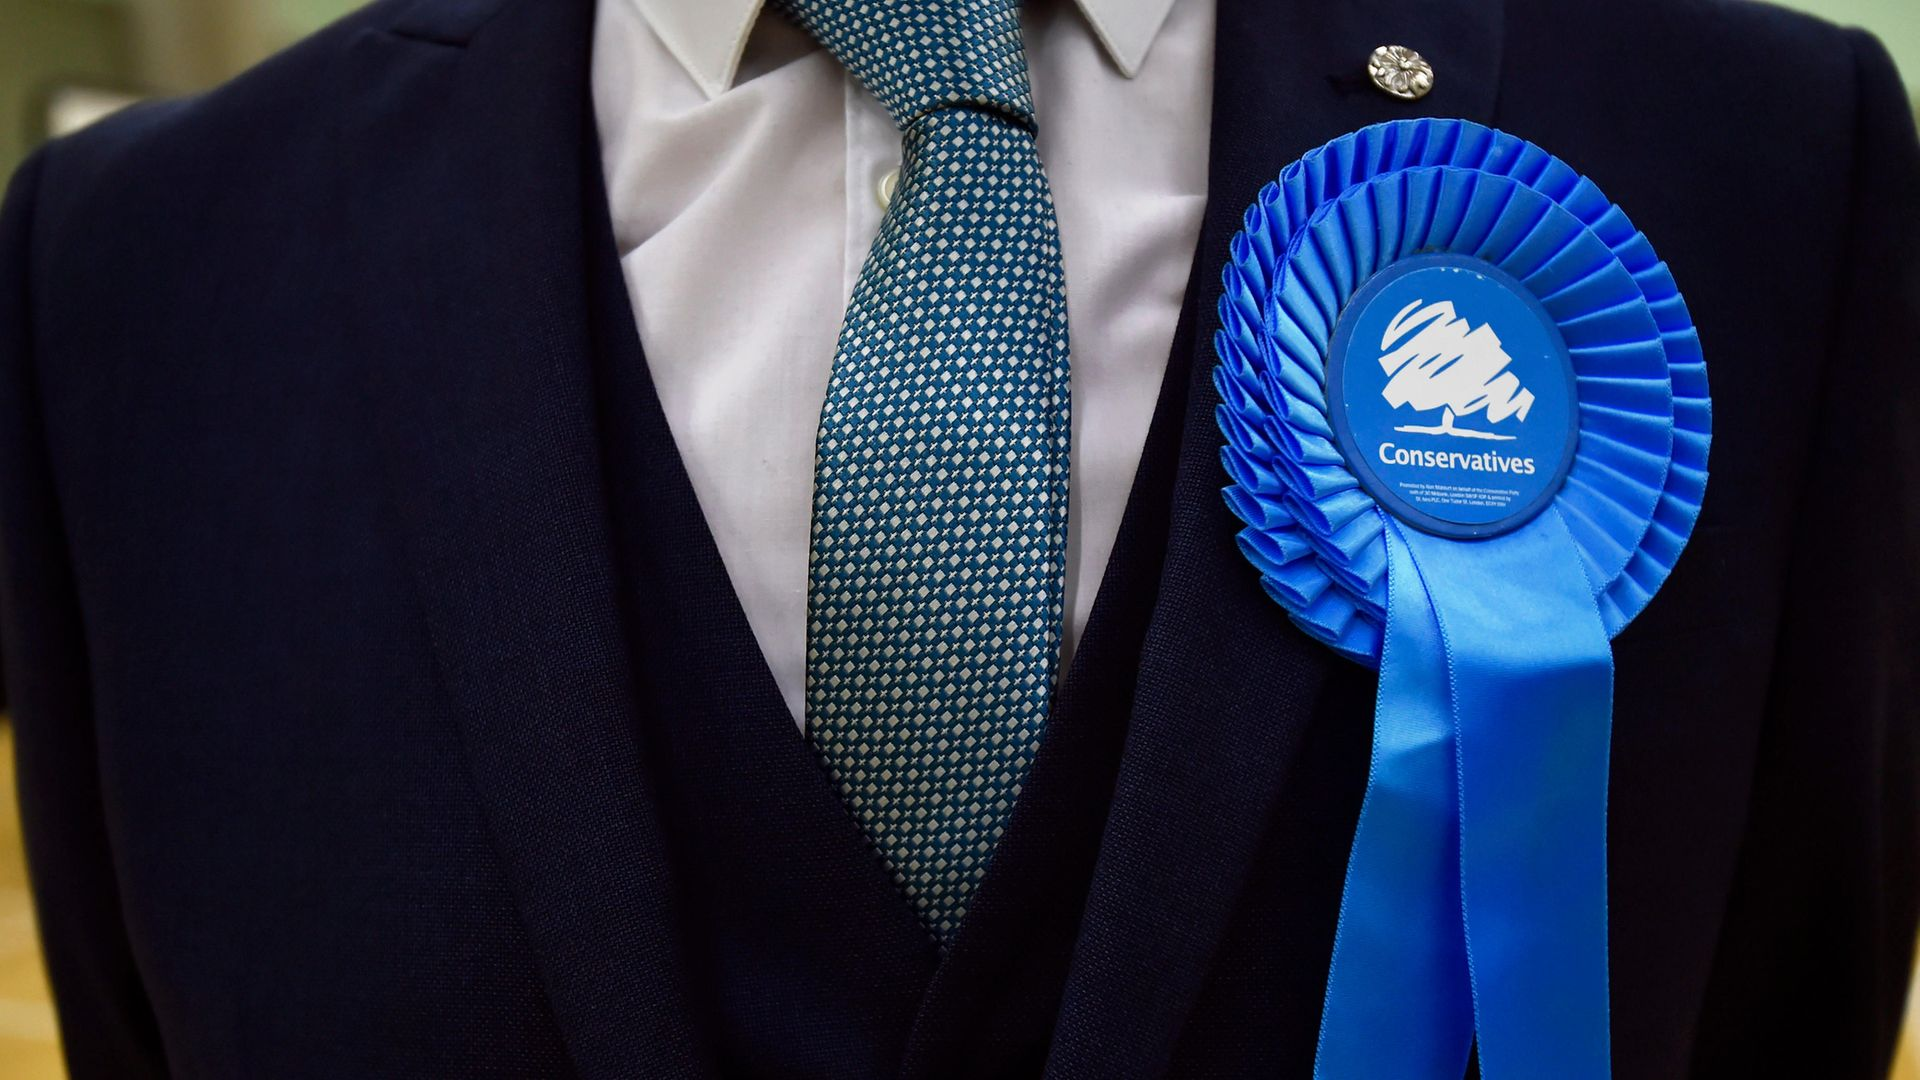 Picture of a Conservative Party rosette - Credit: PA